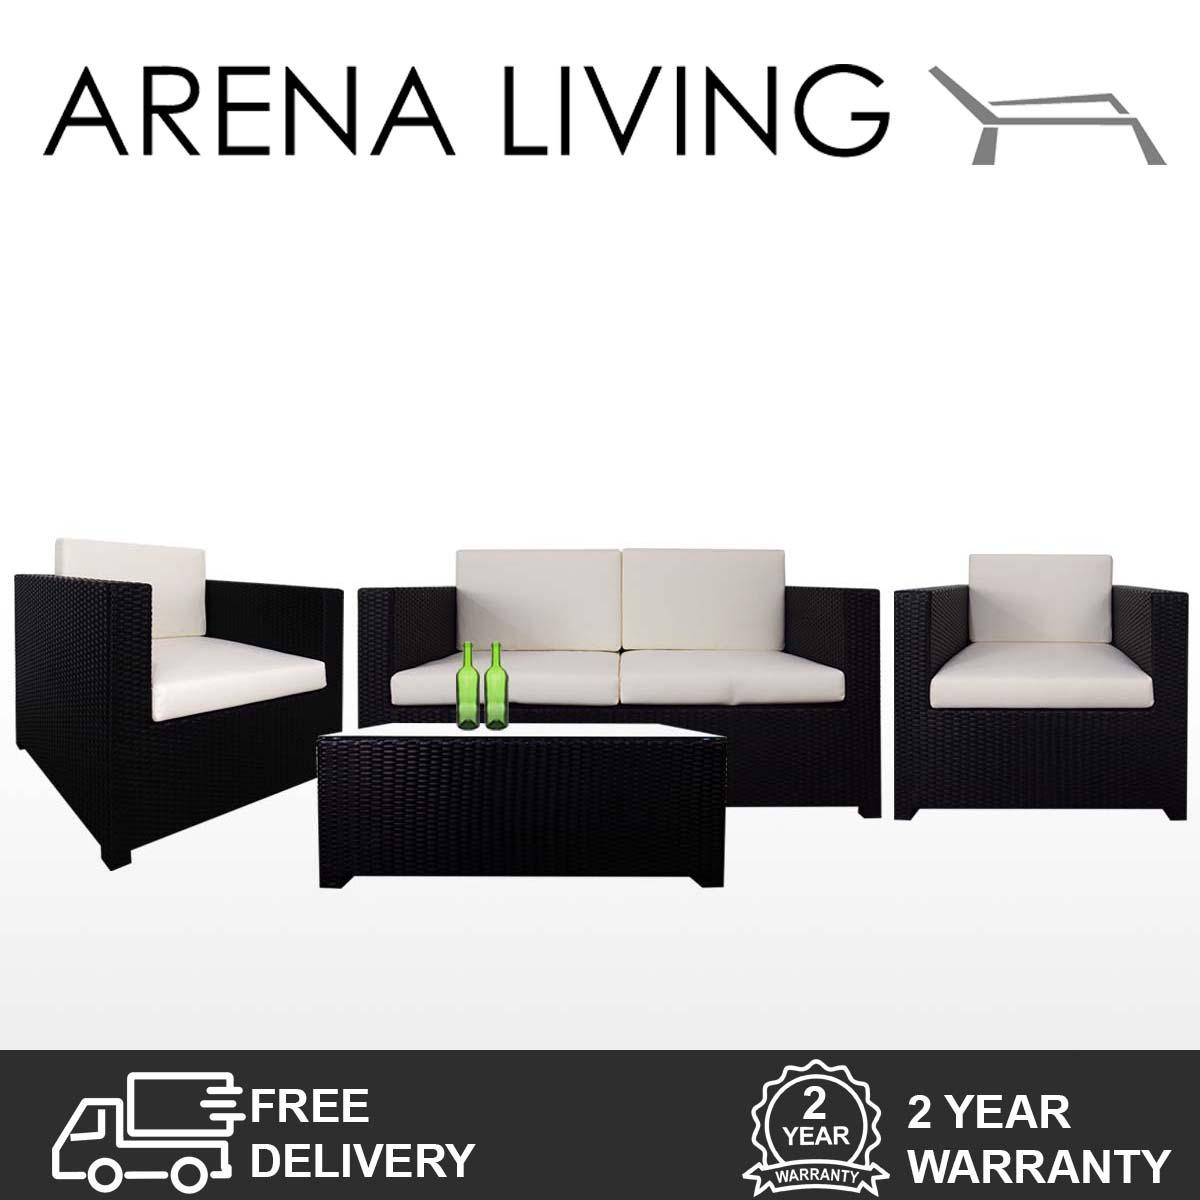 Who Sells Fiesta Sofa Set Ii White Cushions Outdoor Furniture By Arena Living™